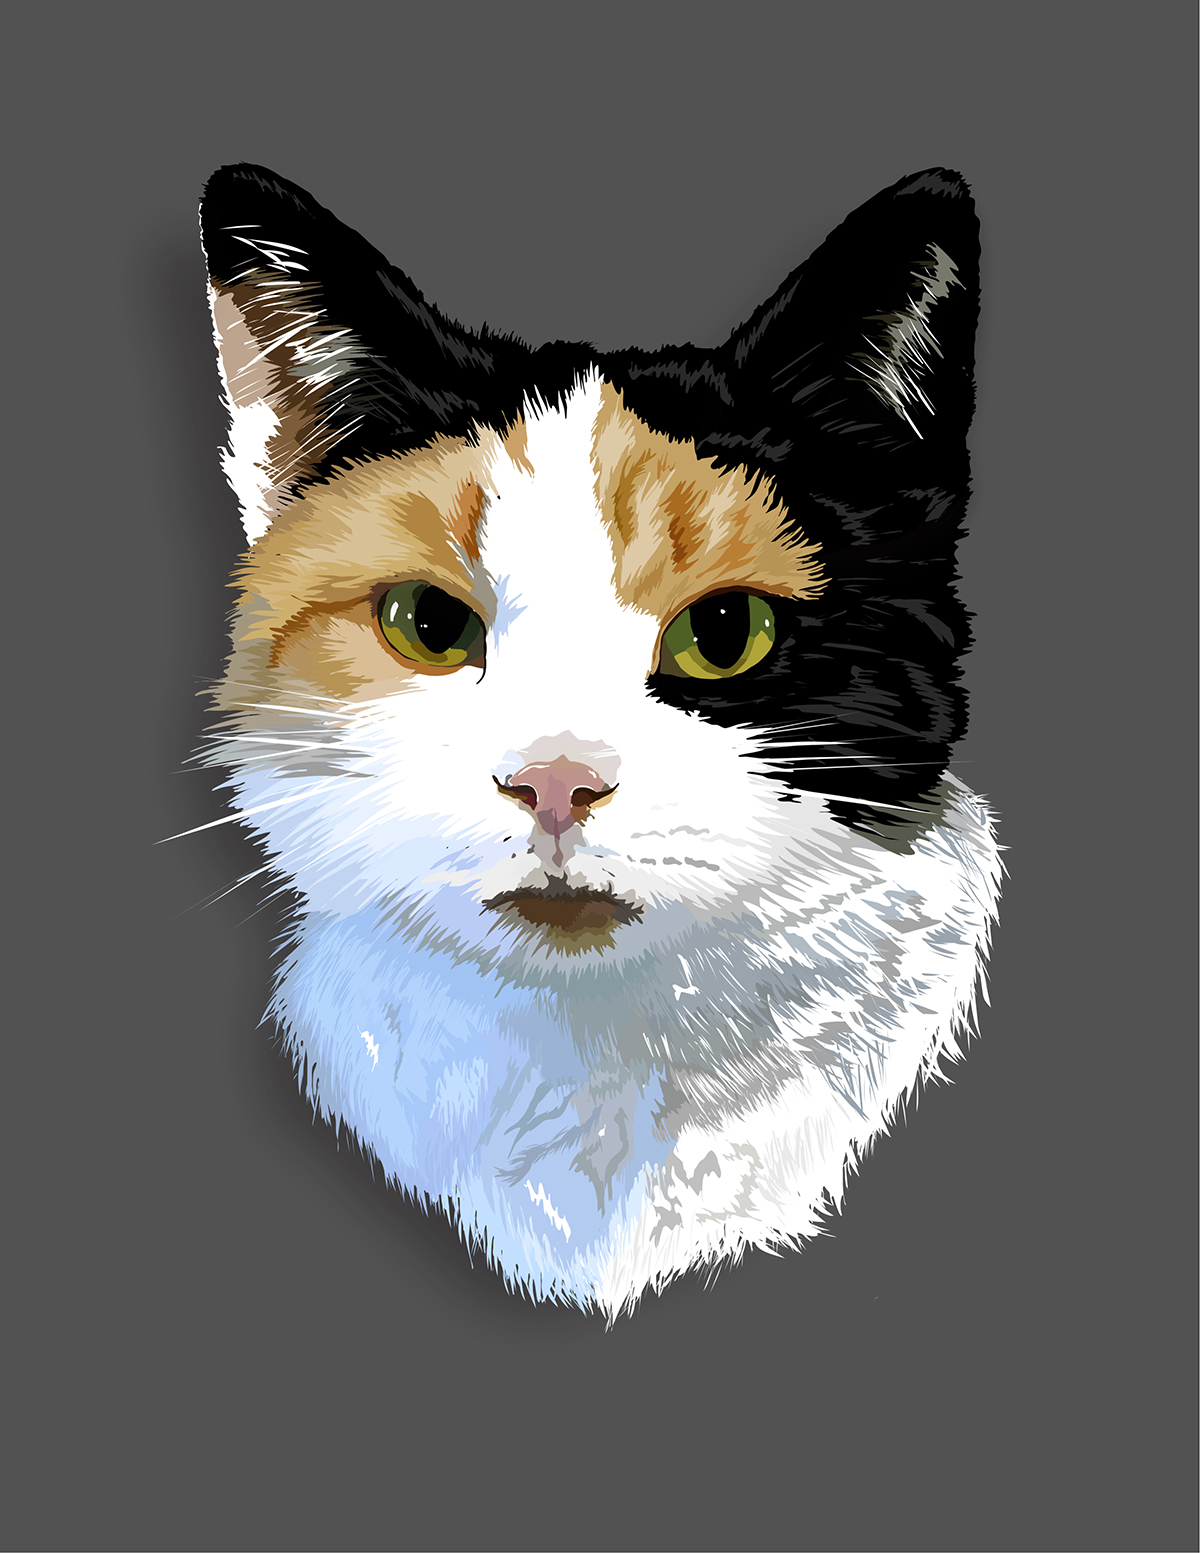 An illustration of a white, black and brown cat.